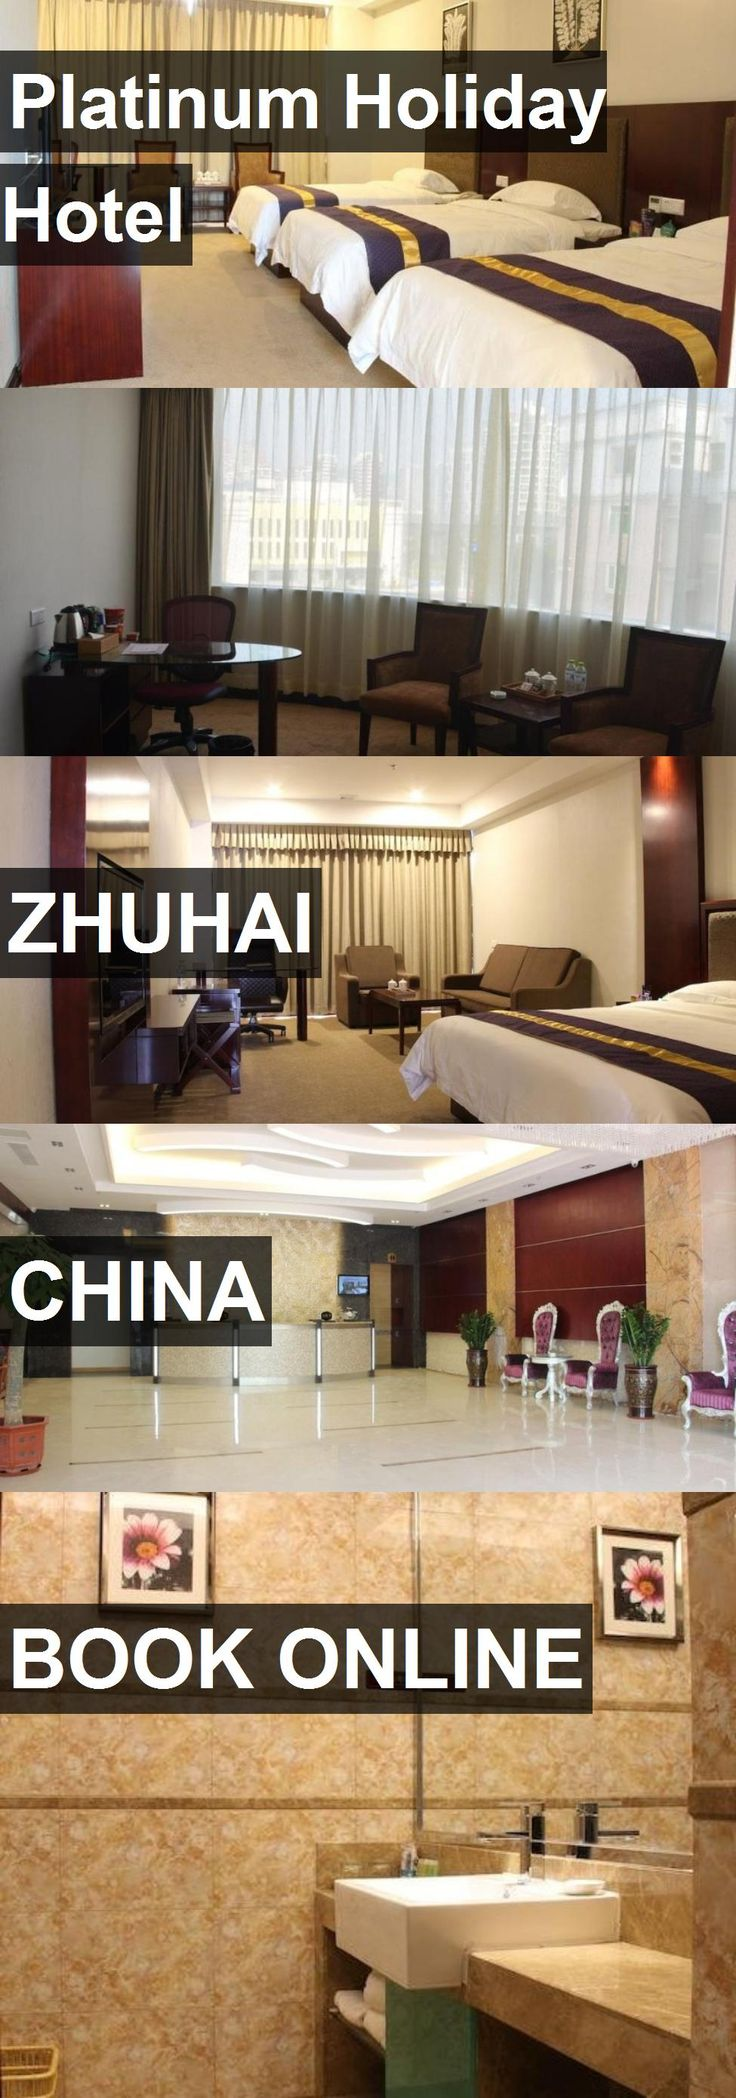 Platinum Holiday Hotel in Zhuhai, China. For more information, photos, reviews and best prices please follow the link. #China #Zhuhai #travel #vacation #hotel